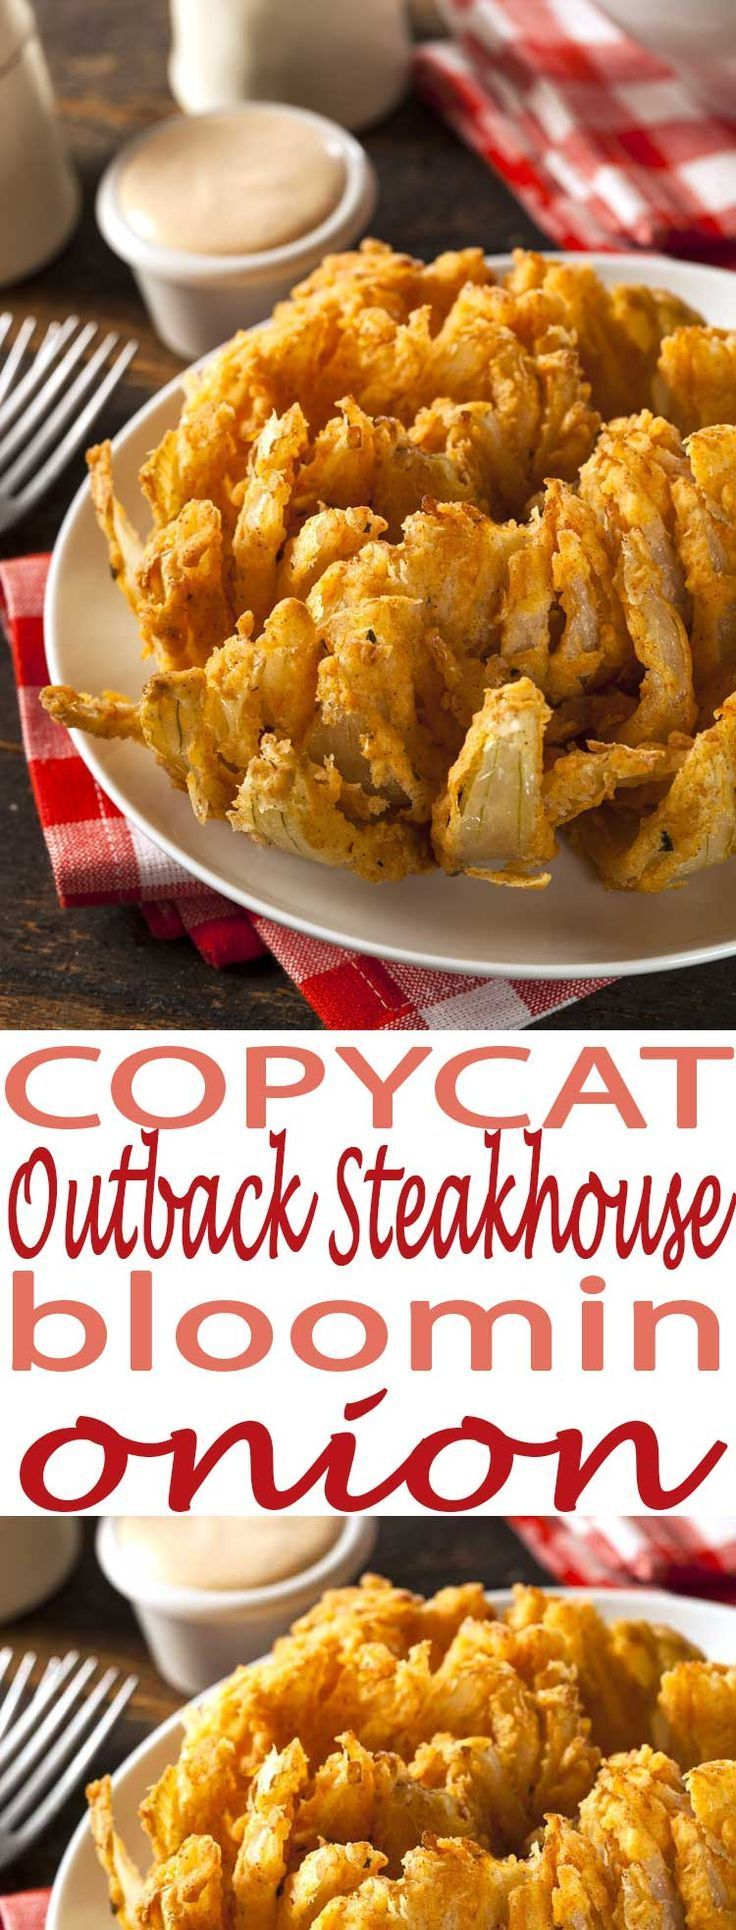 Copycat Outback Steakhouse Bloomin' Onion